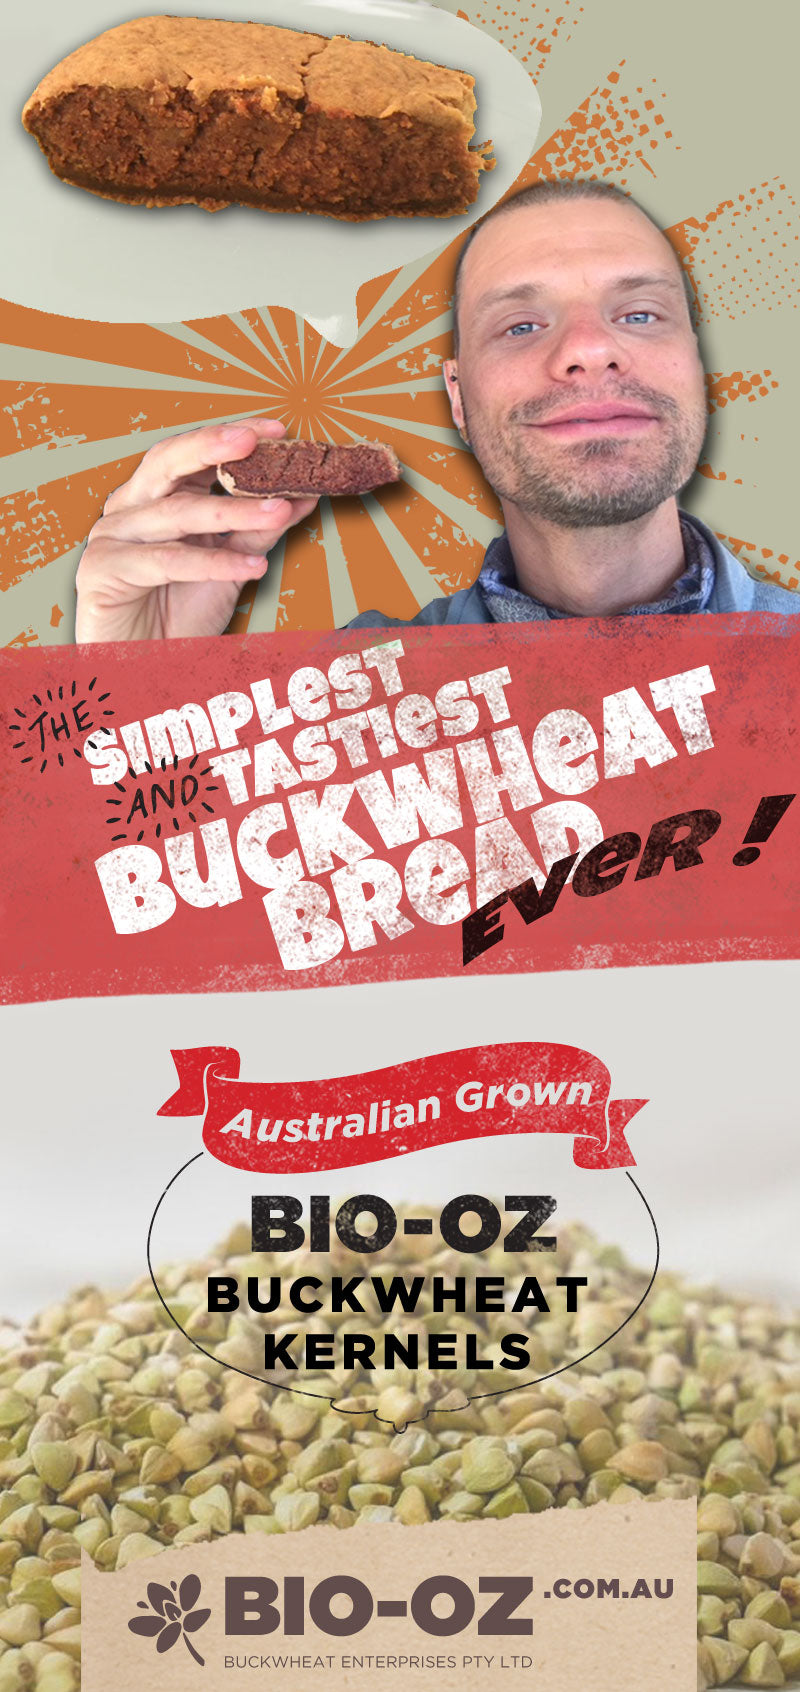 The Simplest and Tastiest Buckwheat Bread ever ! Made with BIO-OZ BUCKWHEAT KERNELS